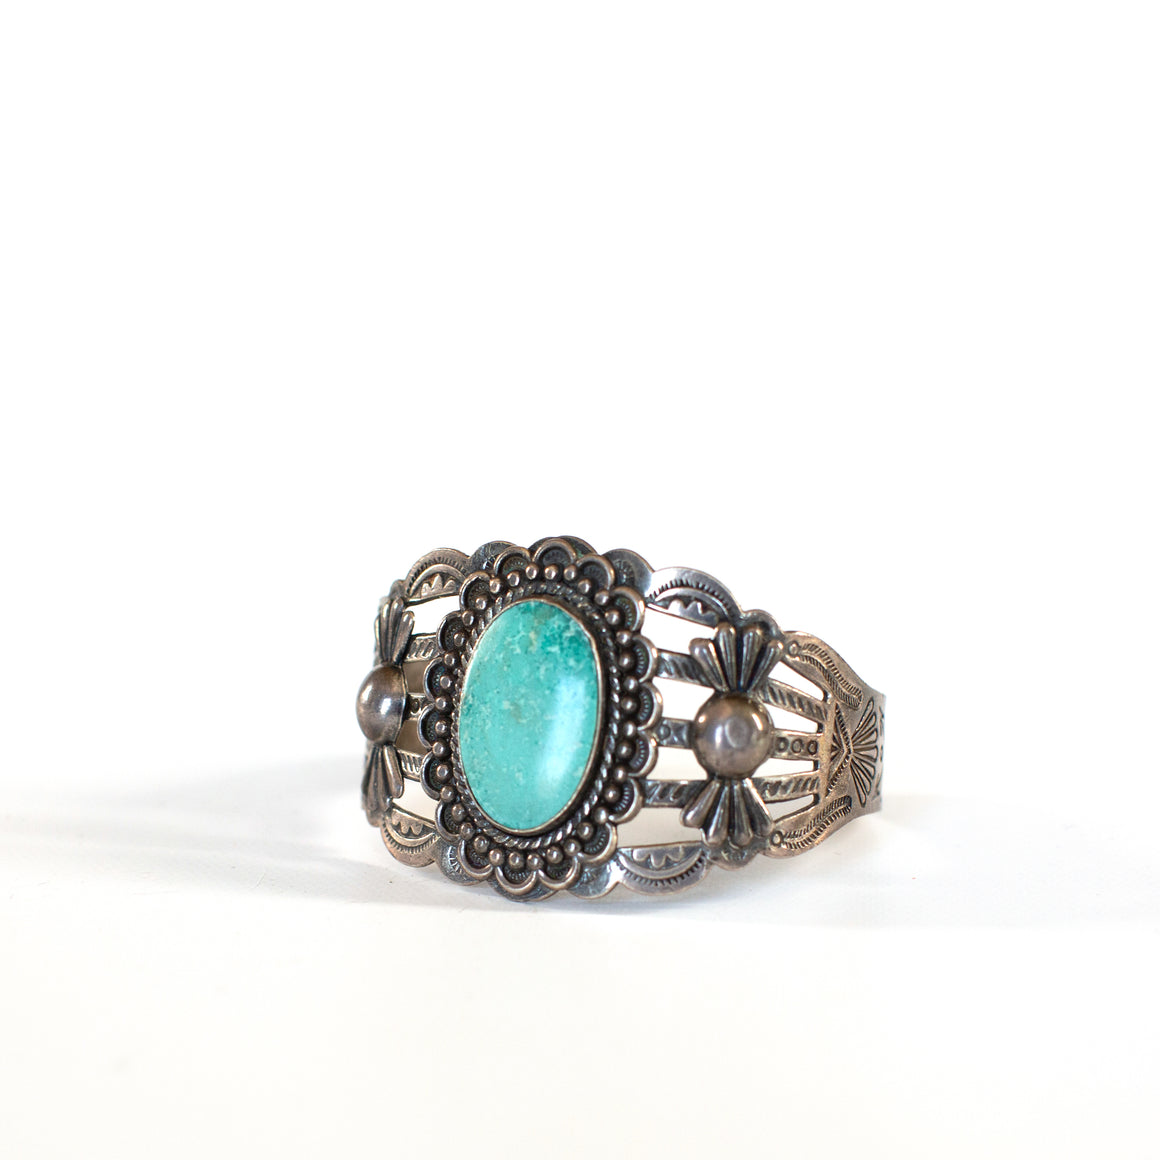 VINTAGE JEWELRY | LARGE STERLING TURQUOISE FRED HARVEY BRACELET